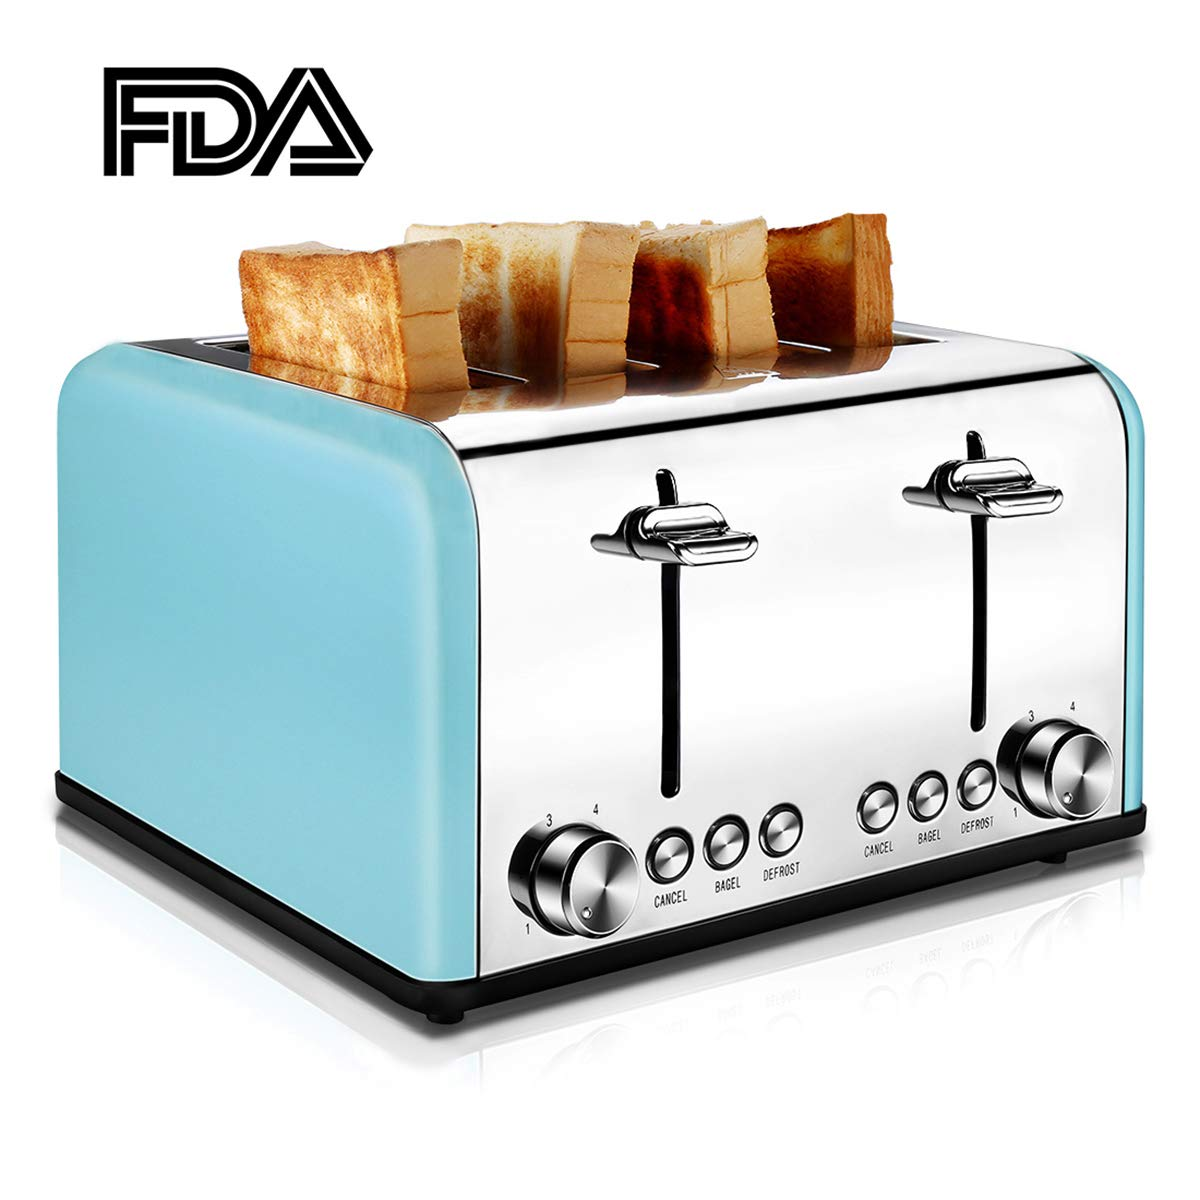 4 Slice Toaster Stainless Steel, CUSIBOX Bagel Toaster Extra-Wide Slots with 6 Bread Browning Settings, BAGEL/DEFROST/CANCEL Function, 1650W, Blue